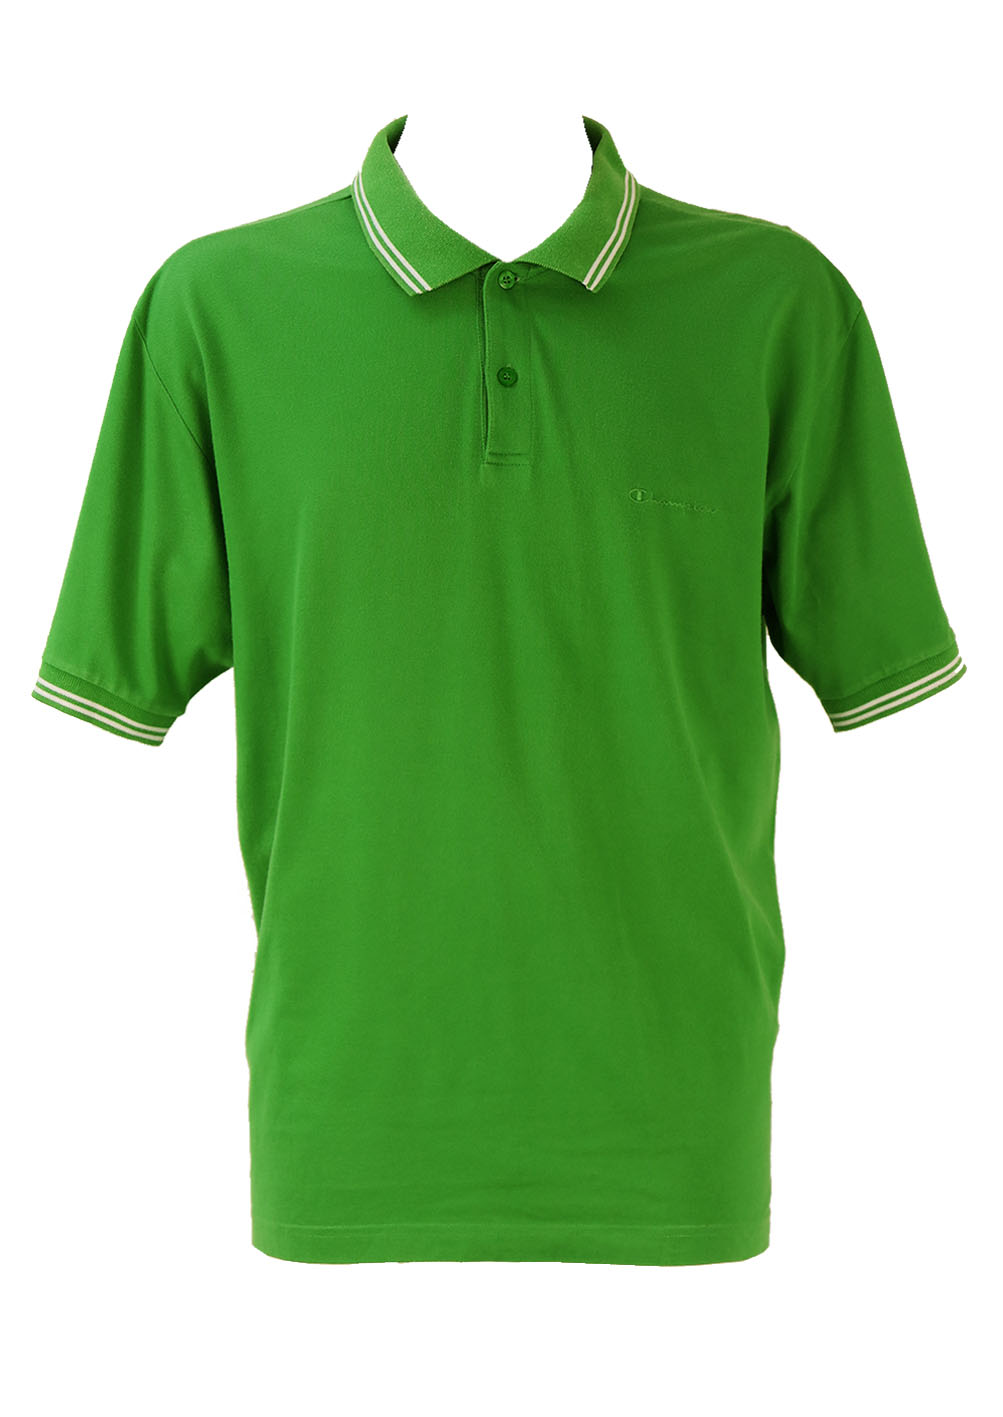 Champion emerald green polo shirt xl xxl reign vintage Emerald green mens dress shirt